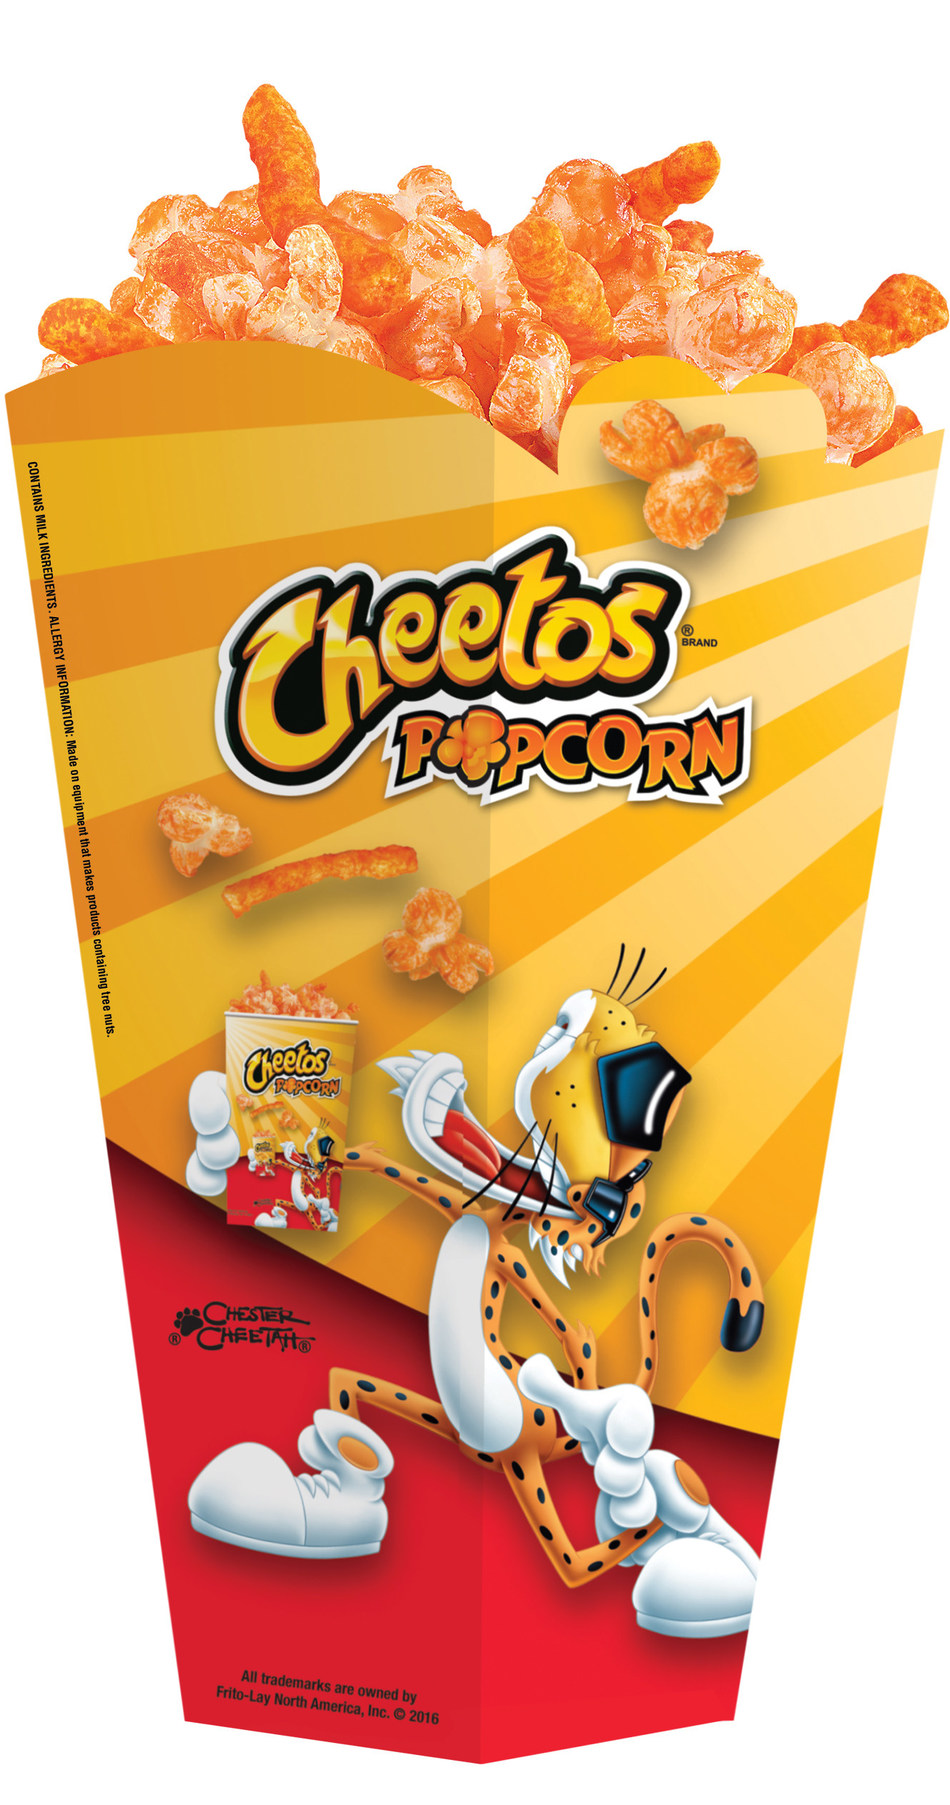 Cheetos Popcorn, featuring Cheetos-flavored popcorn mixed with Crunchy Cheetos, will debut December 15 at Regal Cinemas nationwide